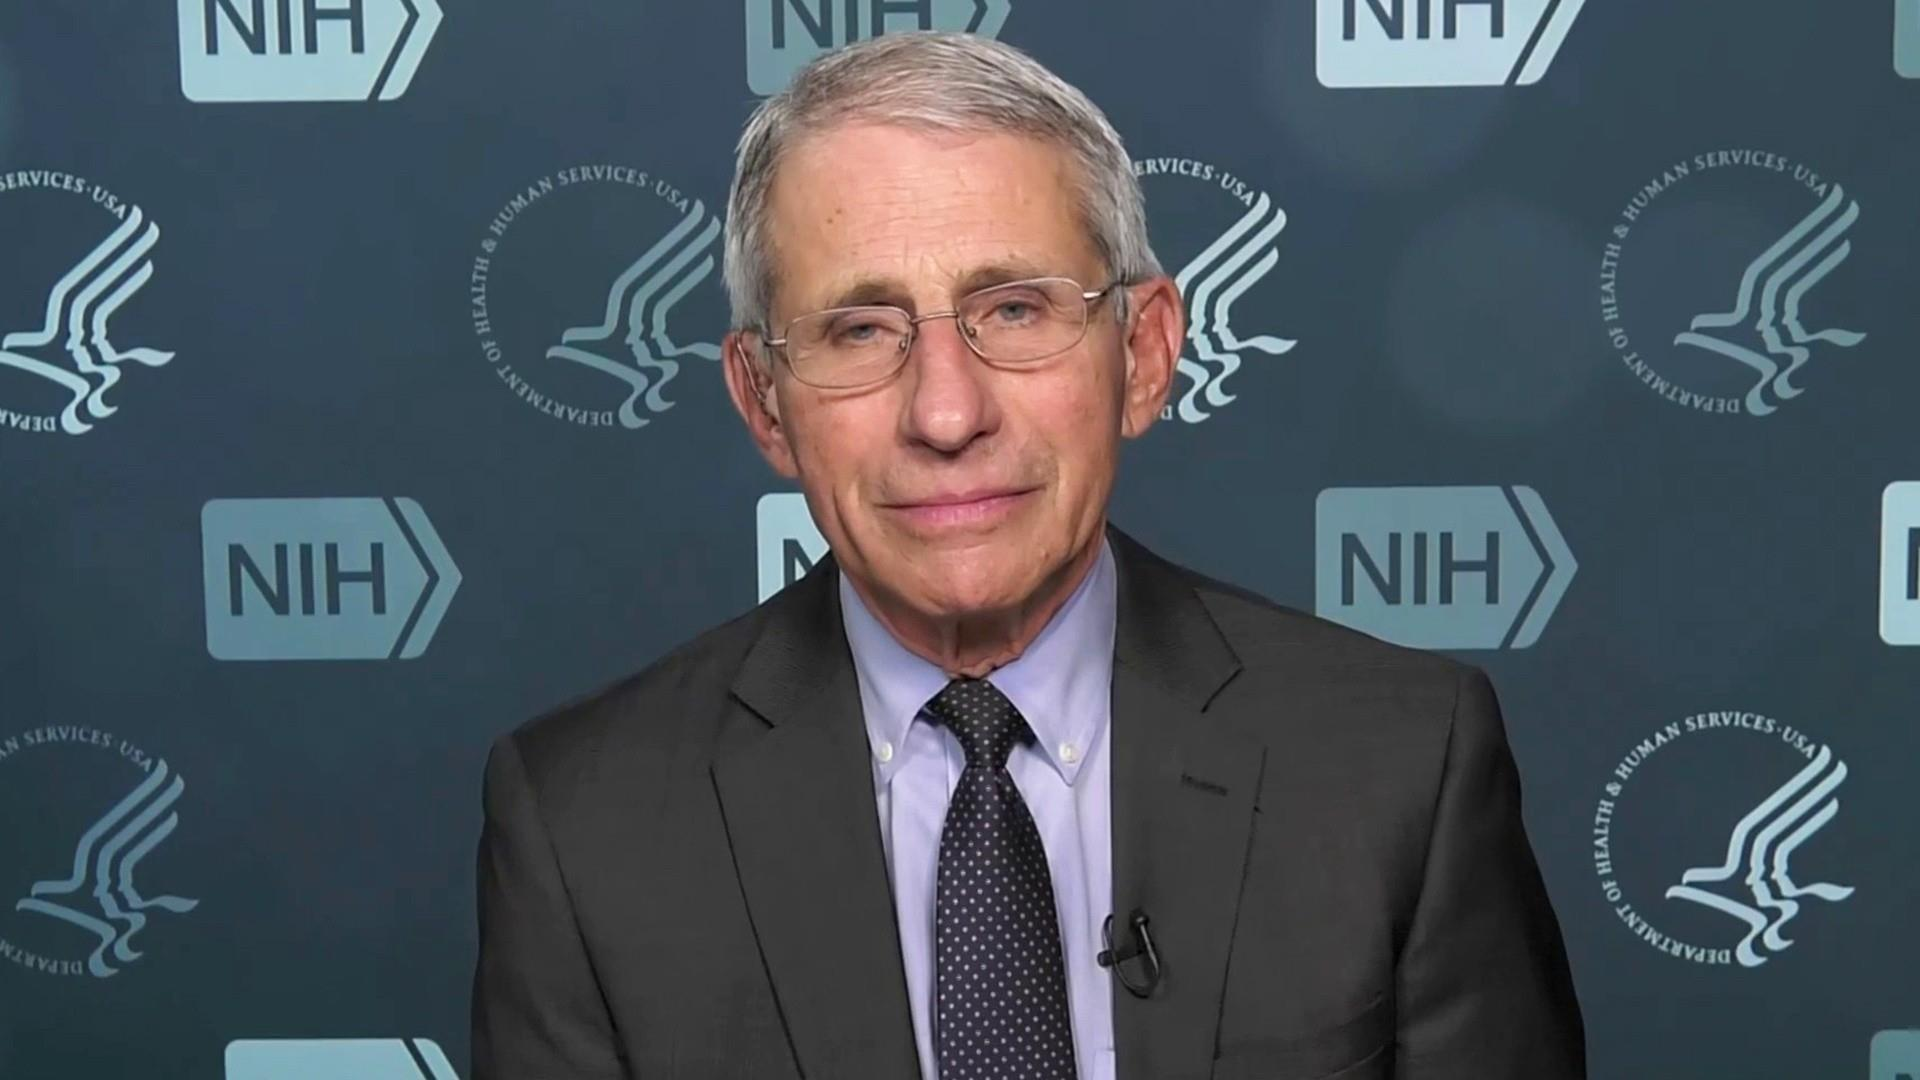 Dr. Fauci on what Americans can do to limit pandemic's harm